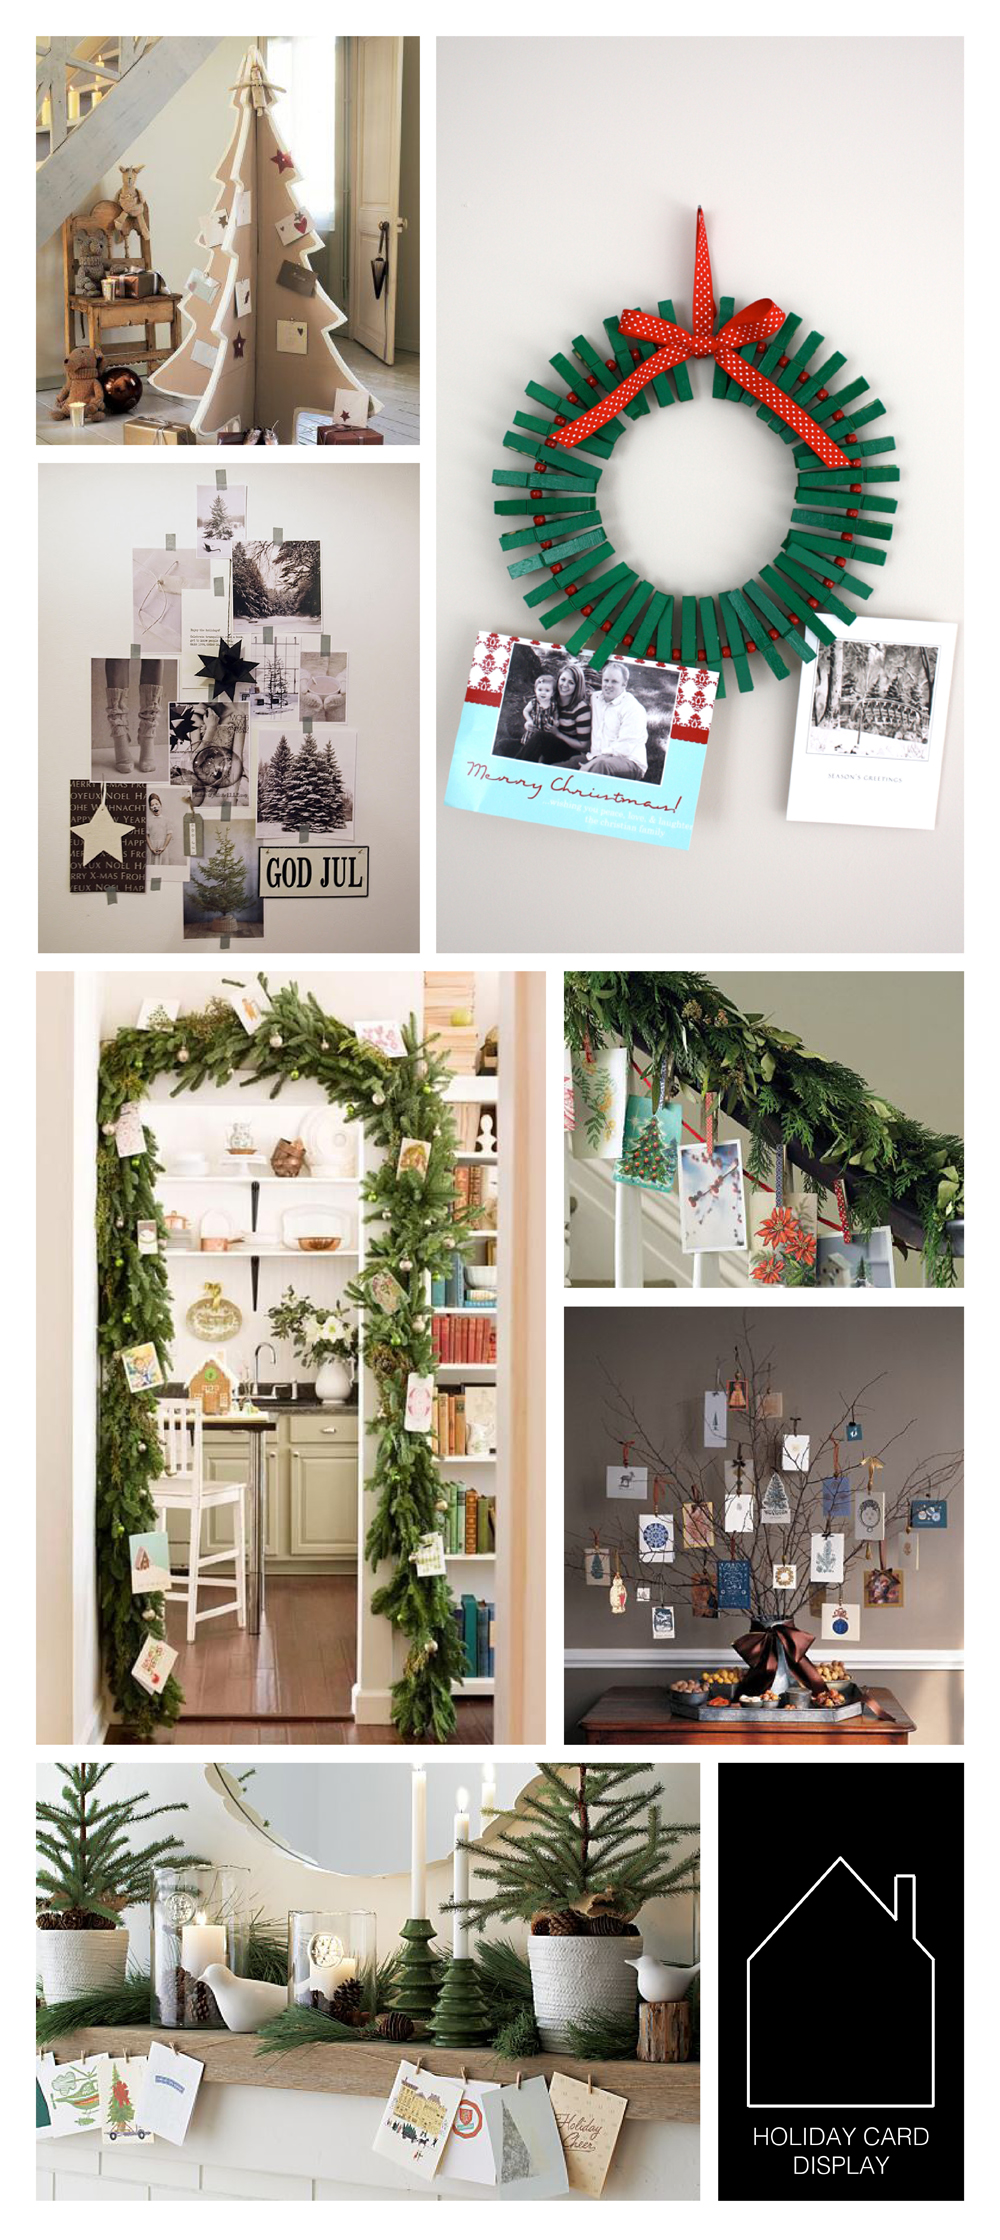 from top left  - cardboard tree via  Marie Claire  - close pin wreath via  Gwenny Penny  - photo tree via  Stil Inspiration  - door garland display via  Bright Bold & Beautiful  - banister garland via  Martha Stewart  - branch display via  Martha Stewart  - mantle display via  Crate & Barrel